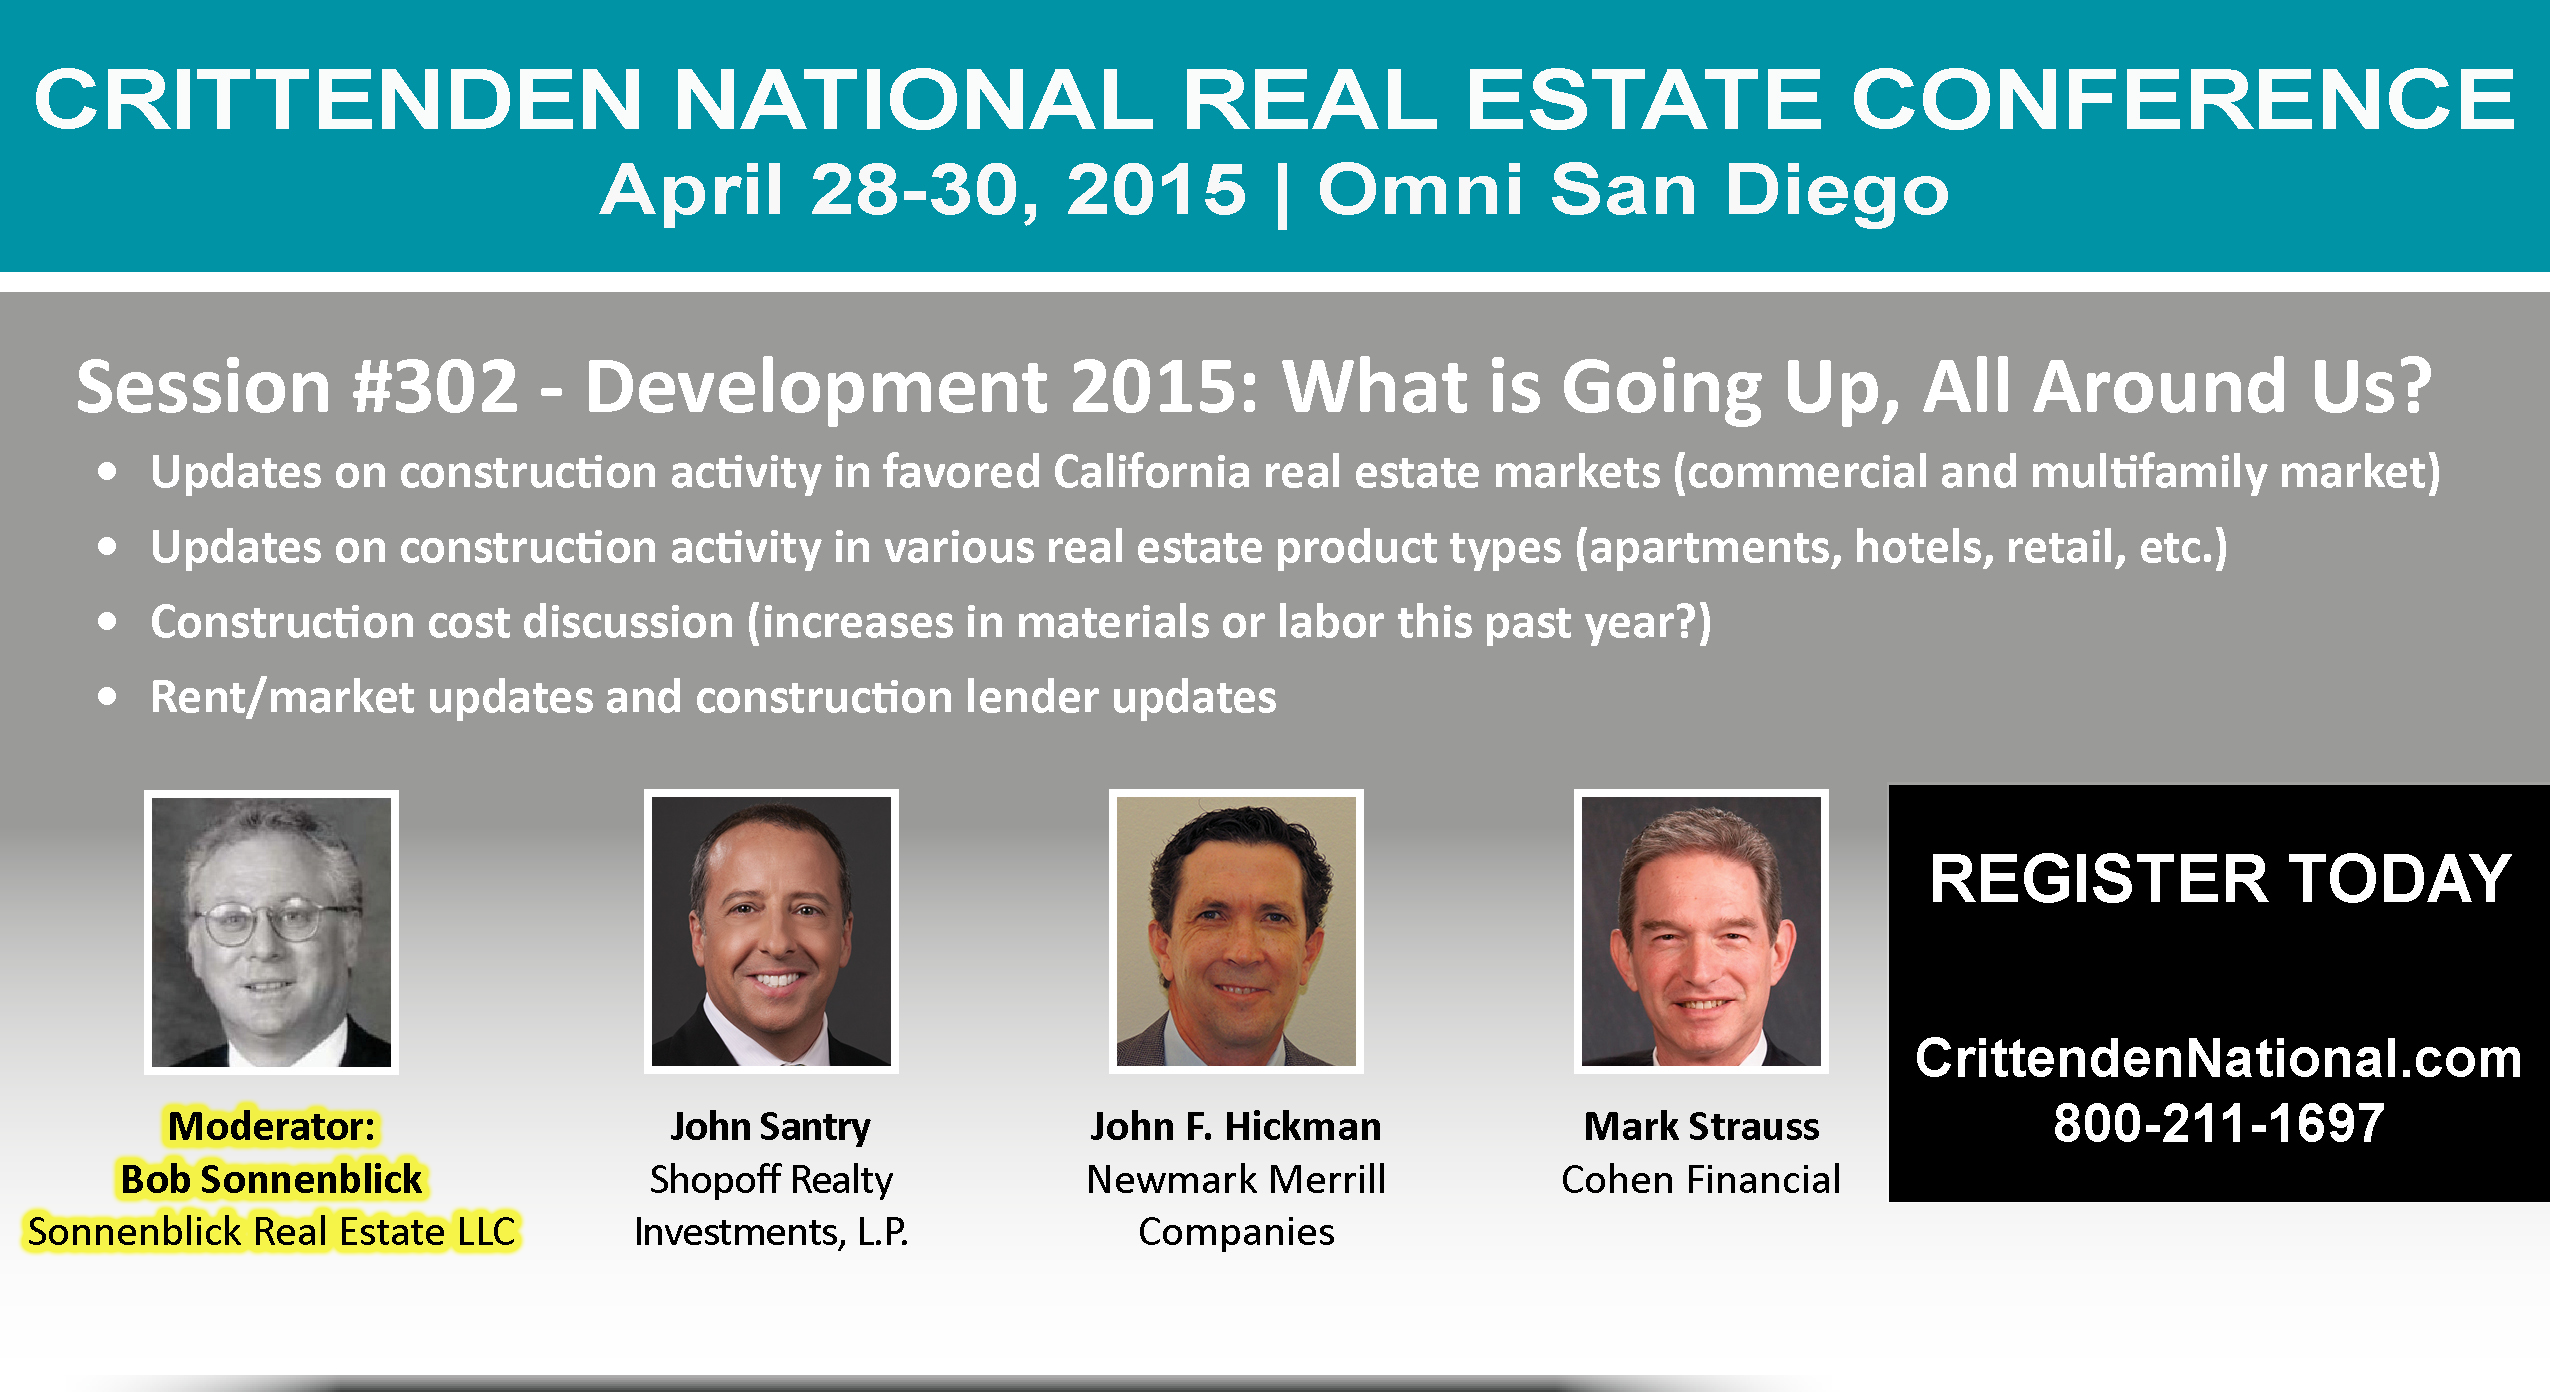 Wednesday, April 29, 2015:  Omni San Diego: 302 - Development 2015: What is Going Up, All Around Us? Bob Sonnenblick Moderator